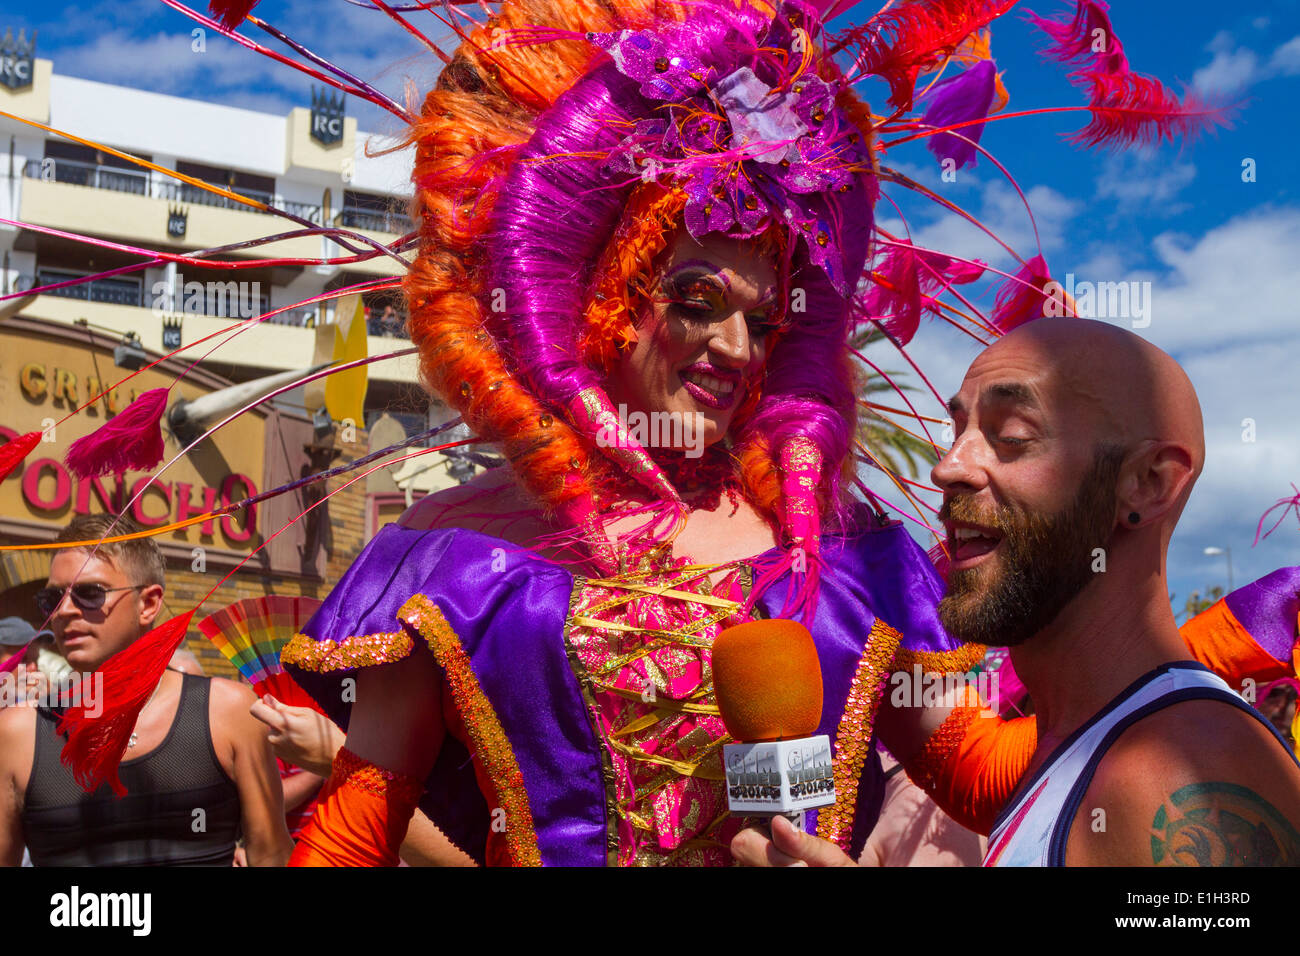 Gay Pride Parade Maspalomas 2014 Stockbild